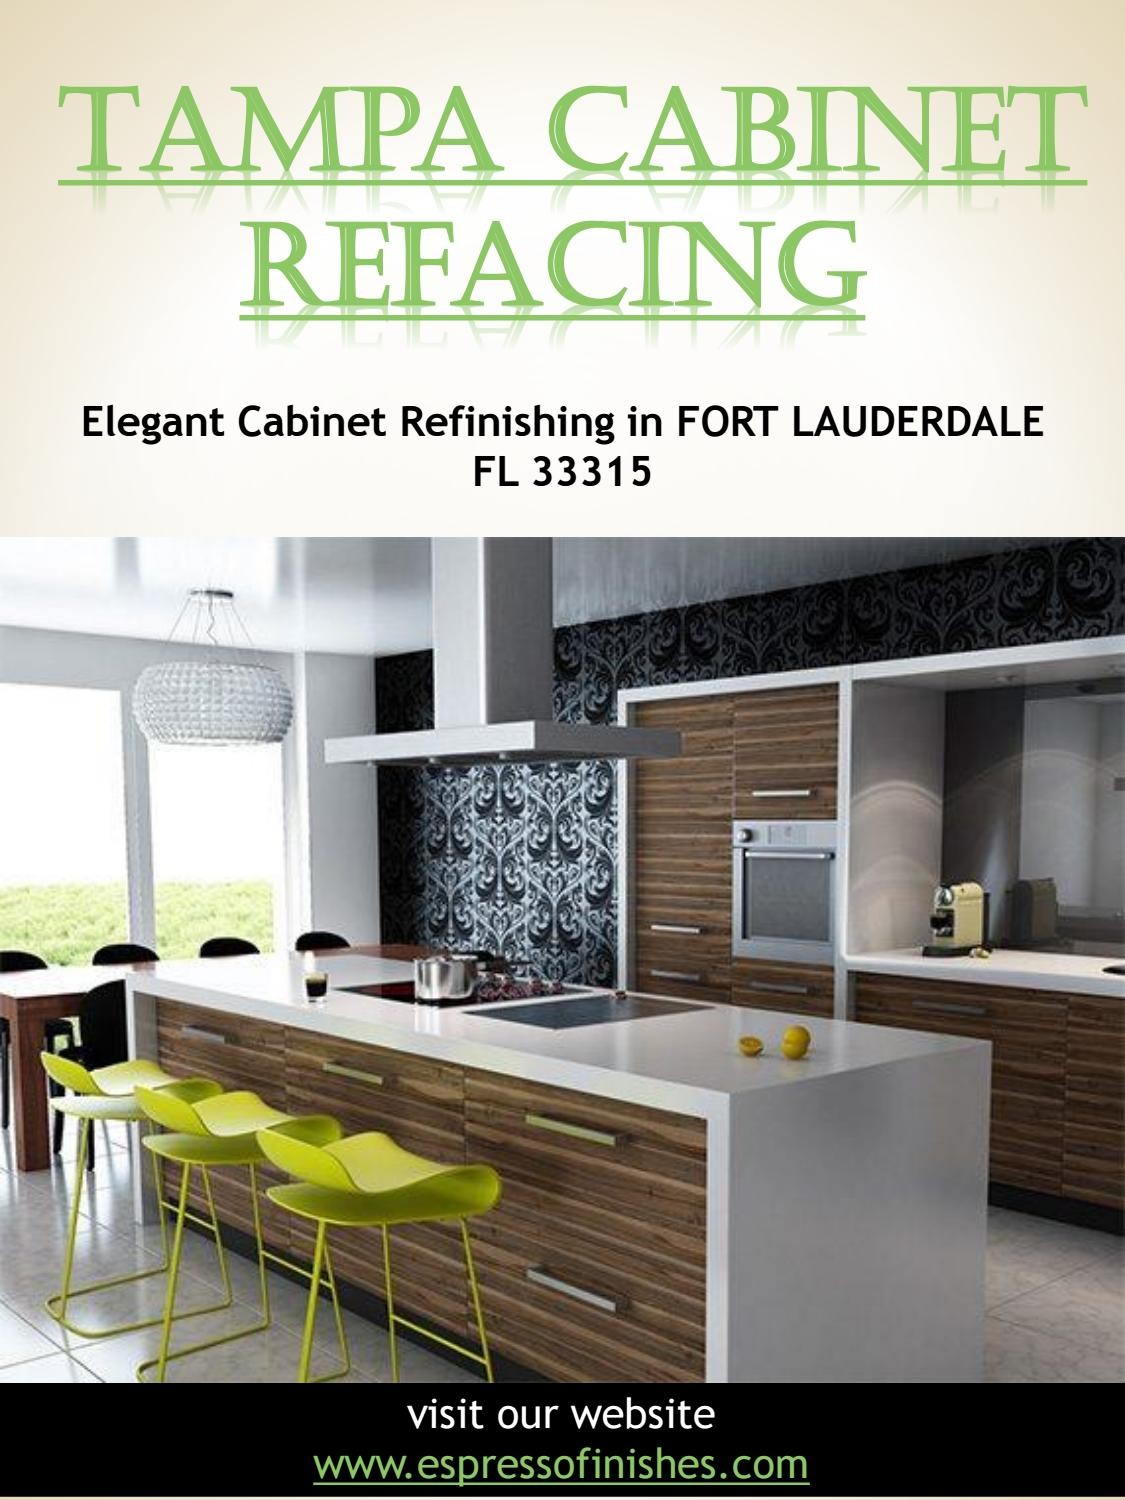 Tampa Cabinet Refacing By Tampacabinetrefacing Issuu